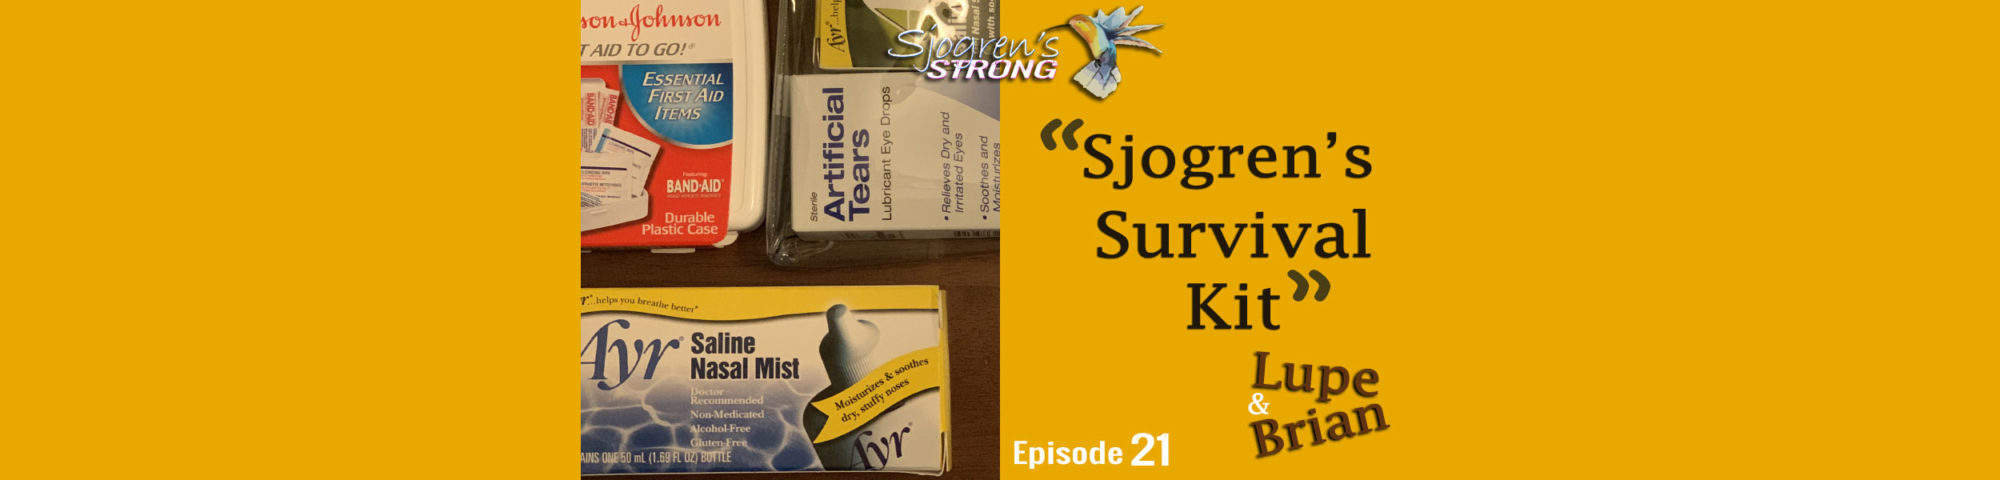 Sjogren's Strong episode 21, Sjogren's Survival Kit